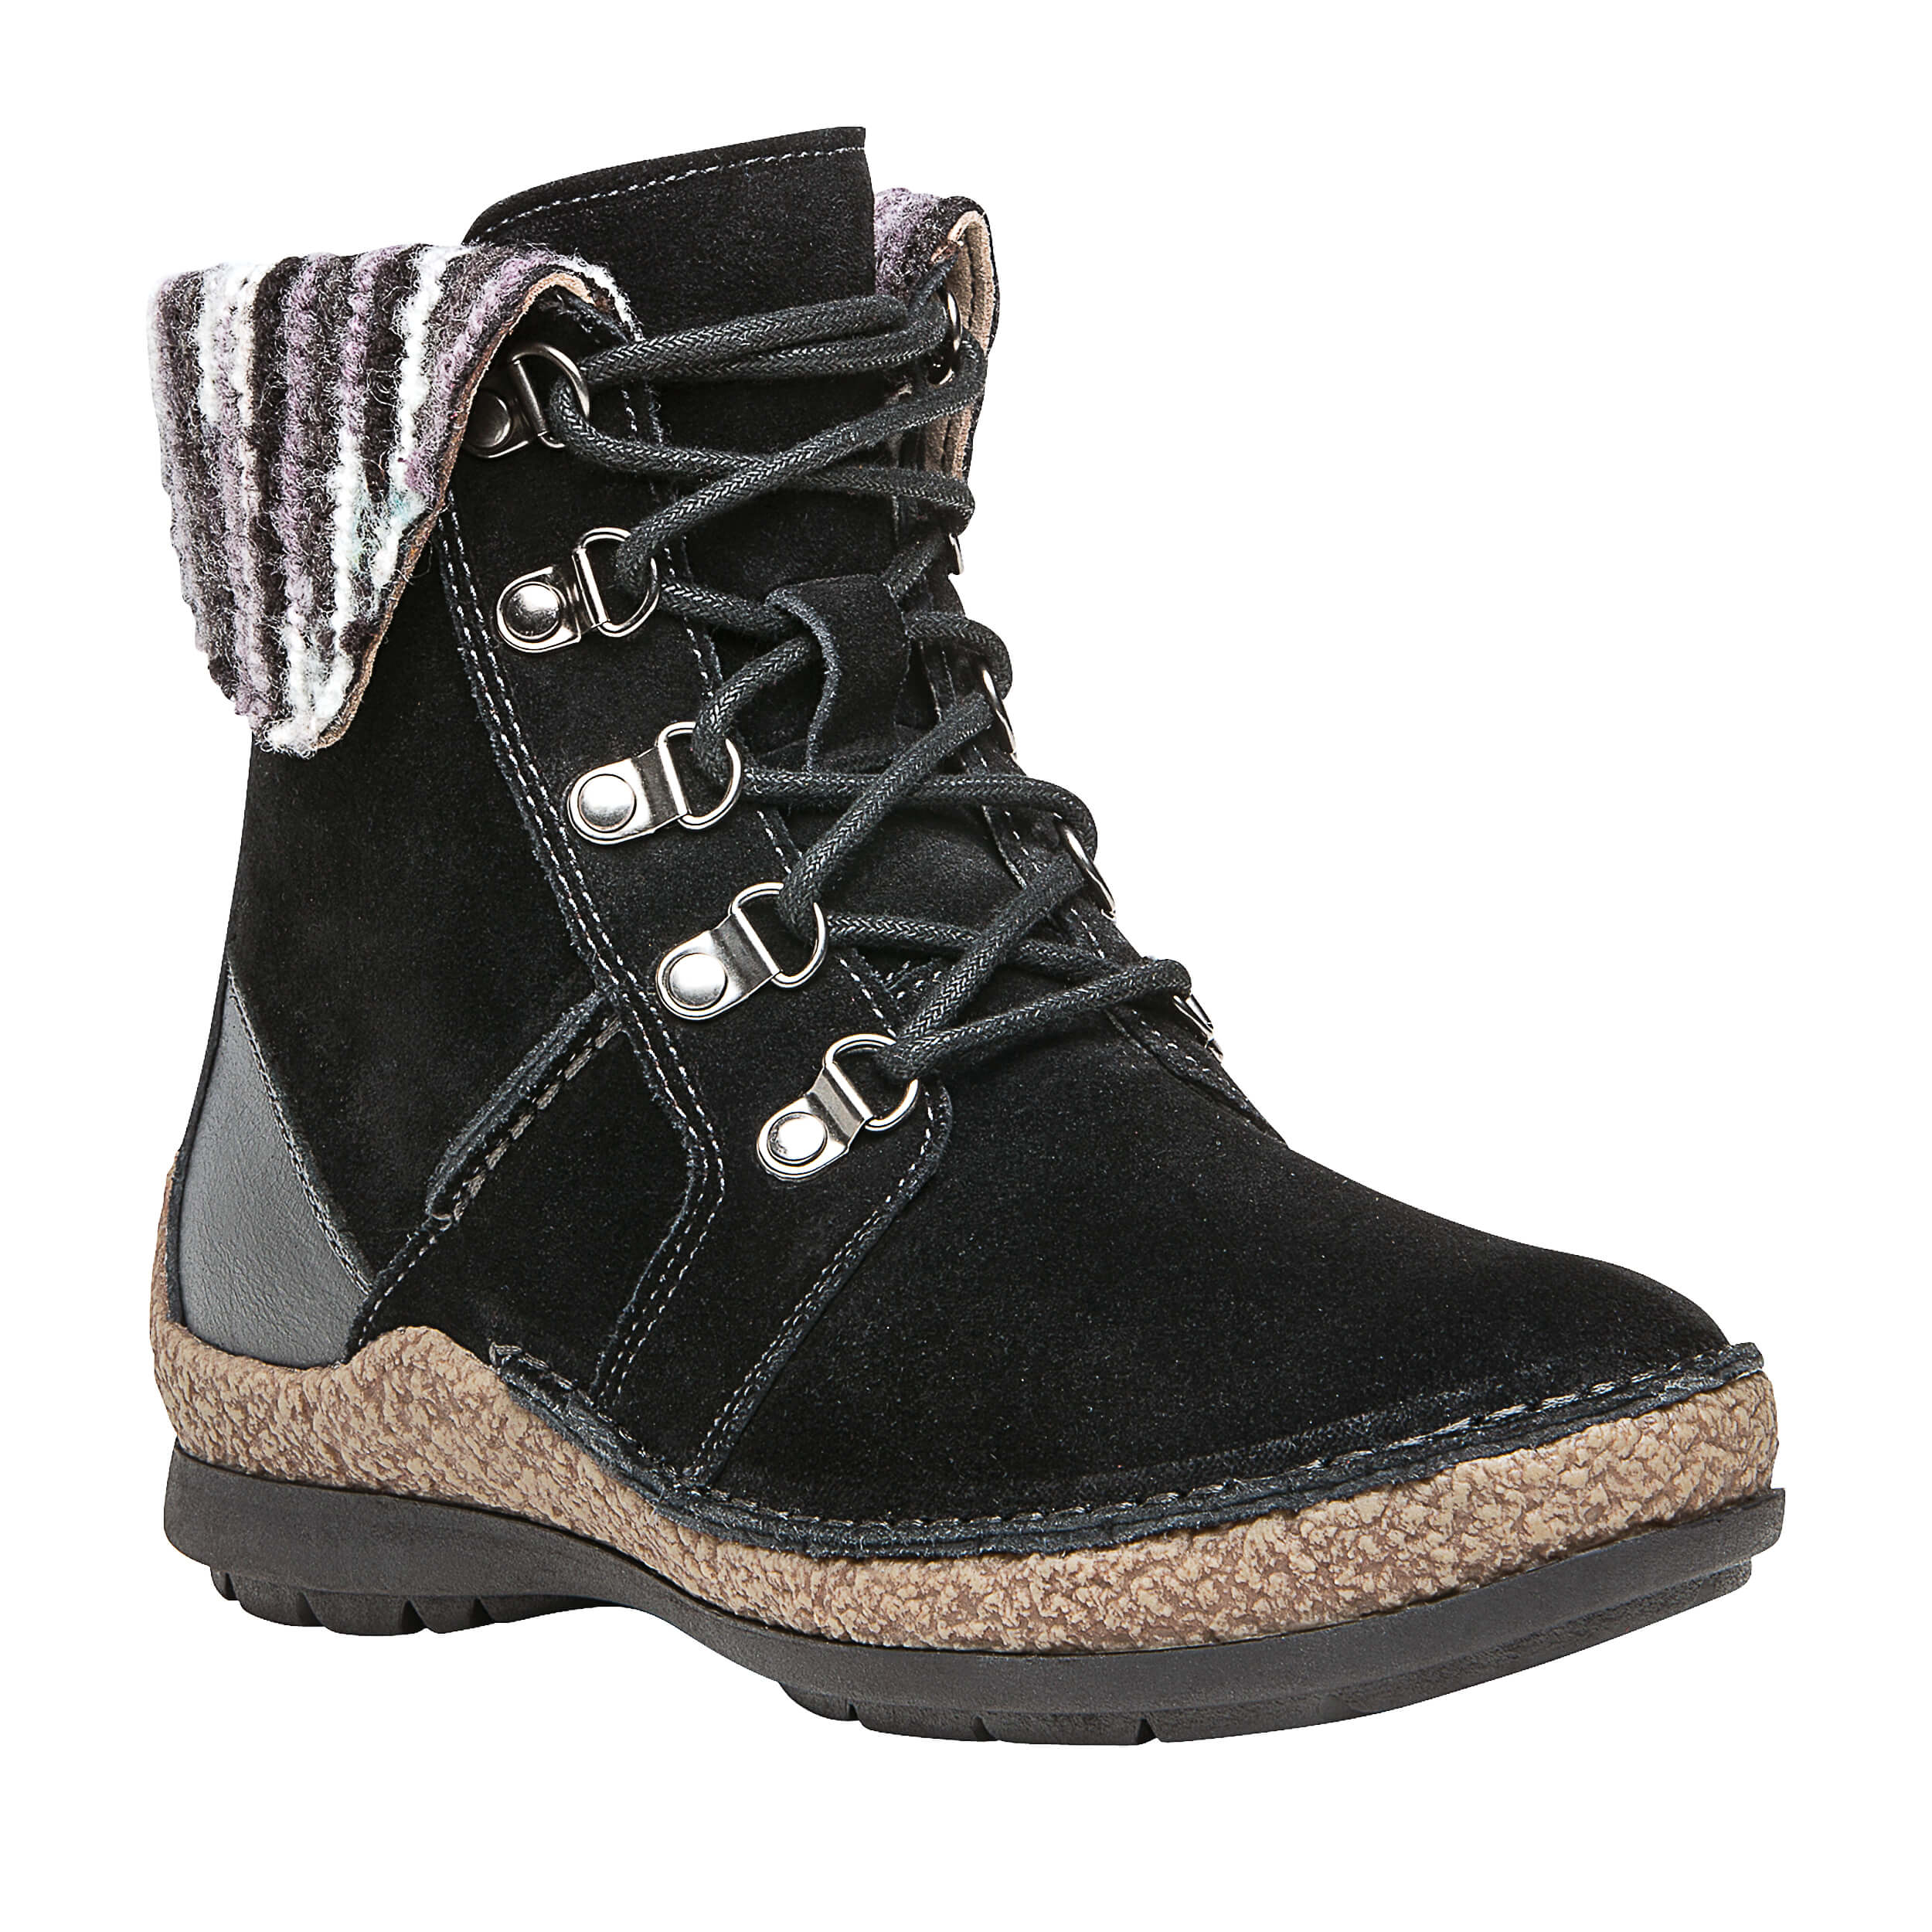 herstyle boots temptng toe on tempting closed slip s taupe for booties block comfortable main low basel stack women heel comforter walking